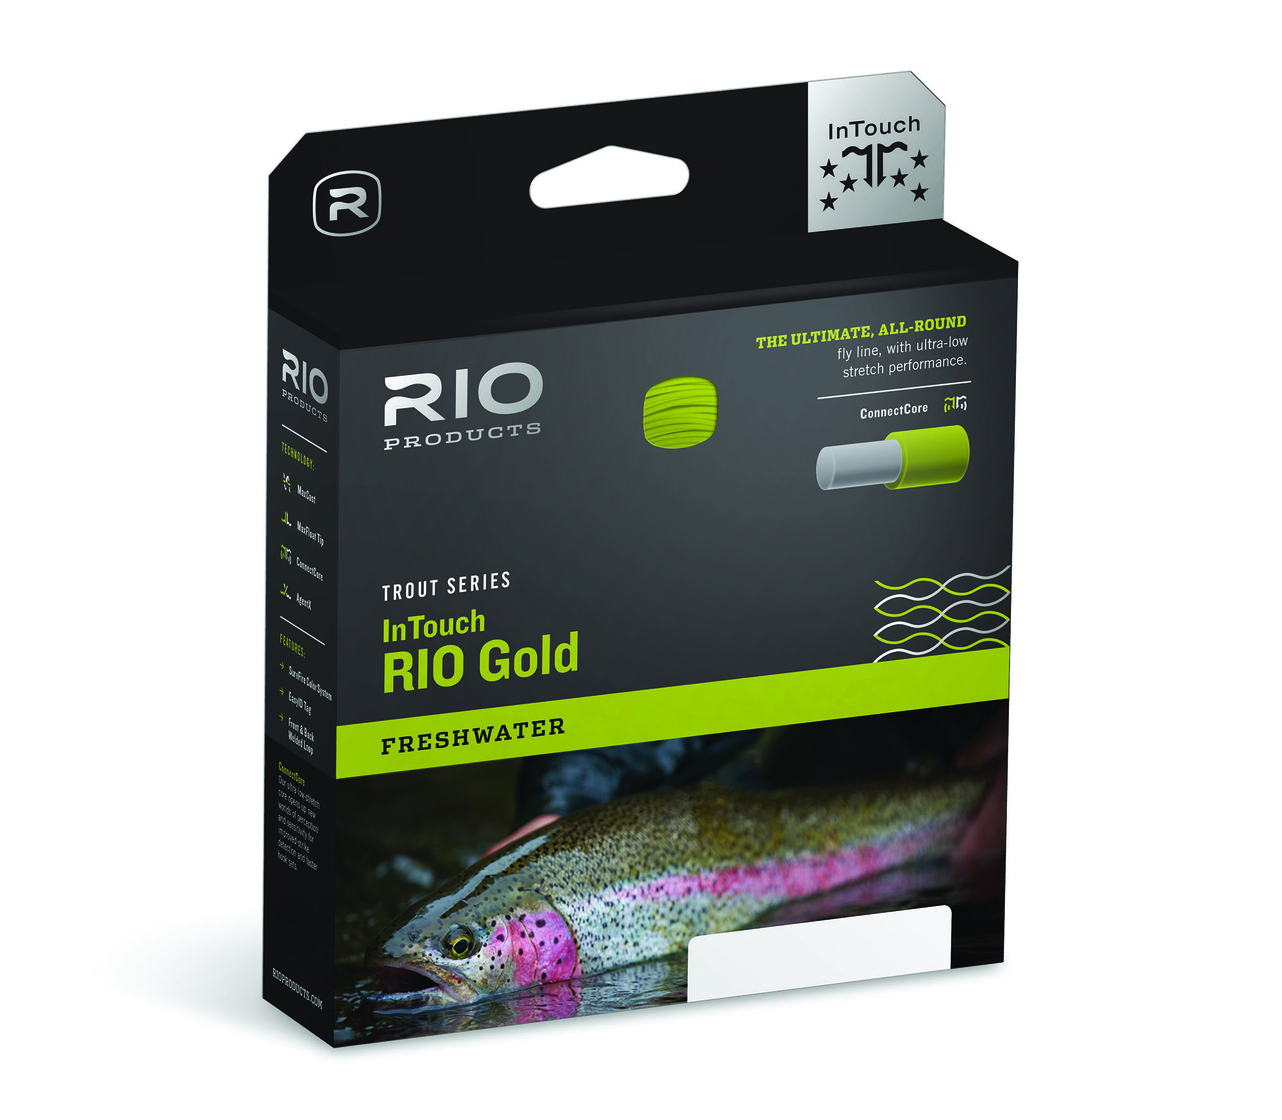 In Touch Rio Gold